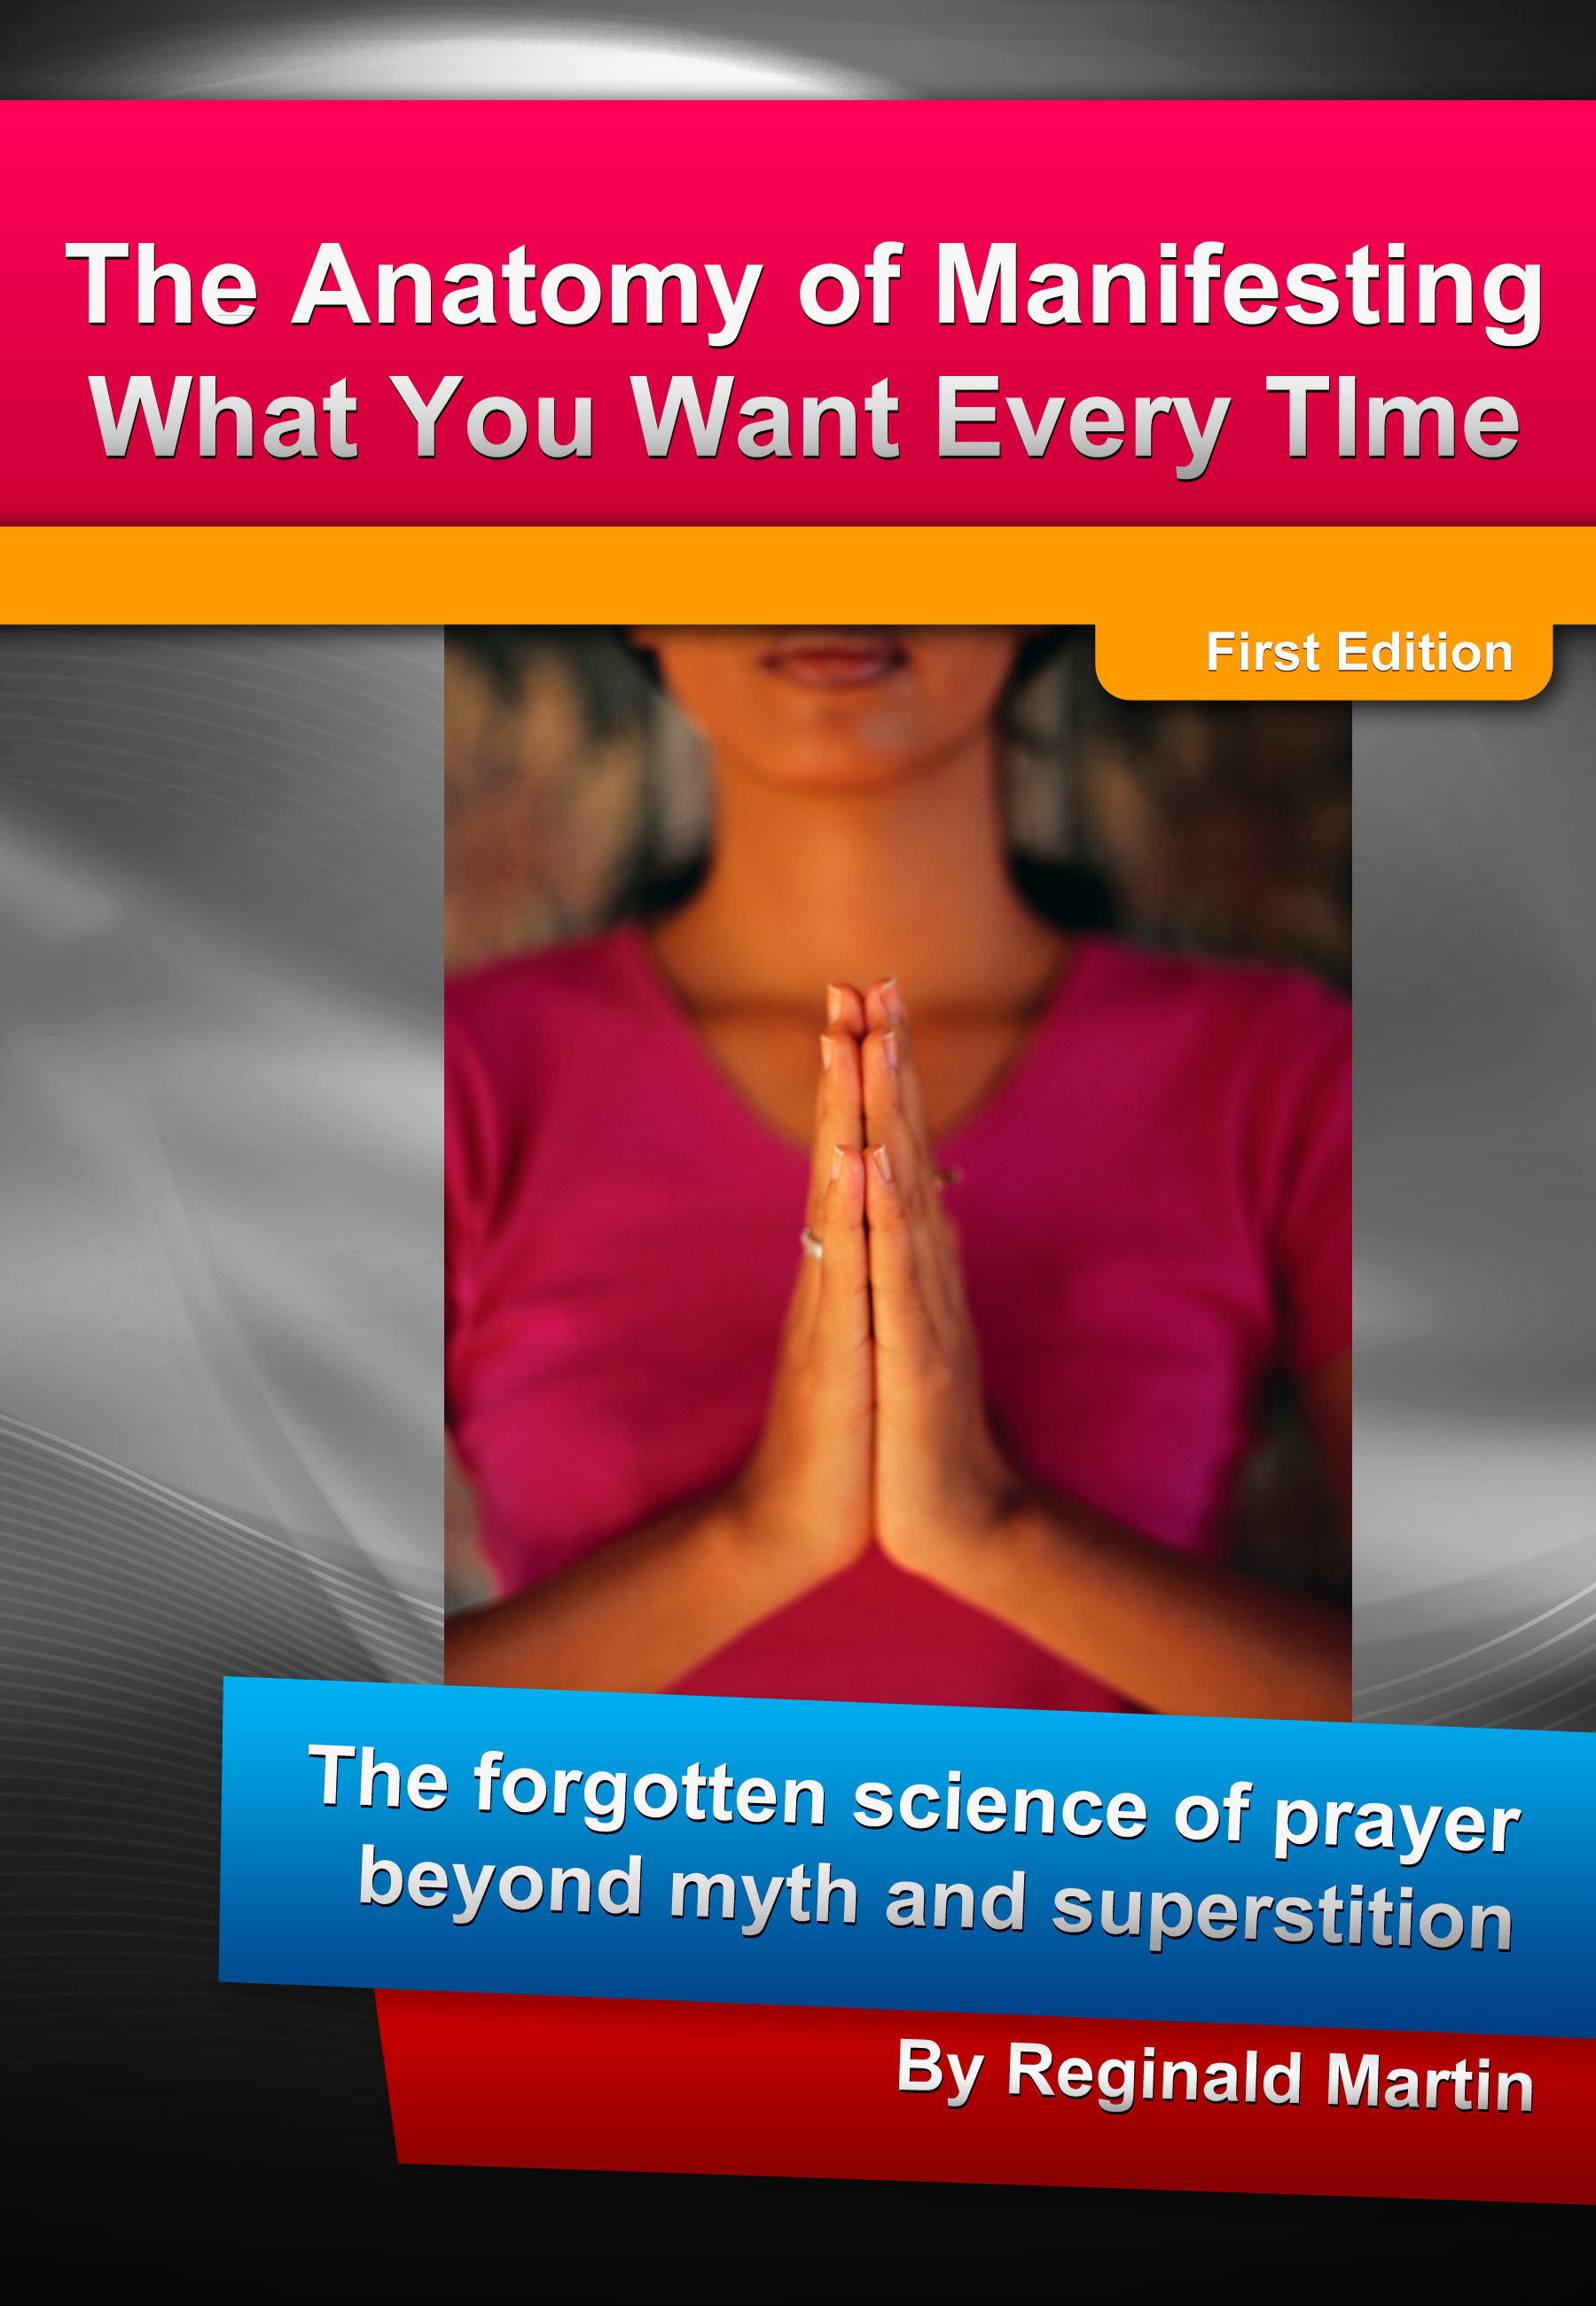 The Anatomy Of Manifesting What You Want Every Time: The Forgotten Science Of Prayer Beyond Myth And Superstition